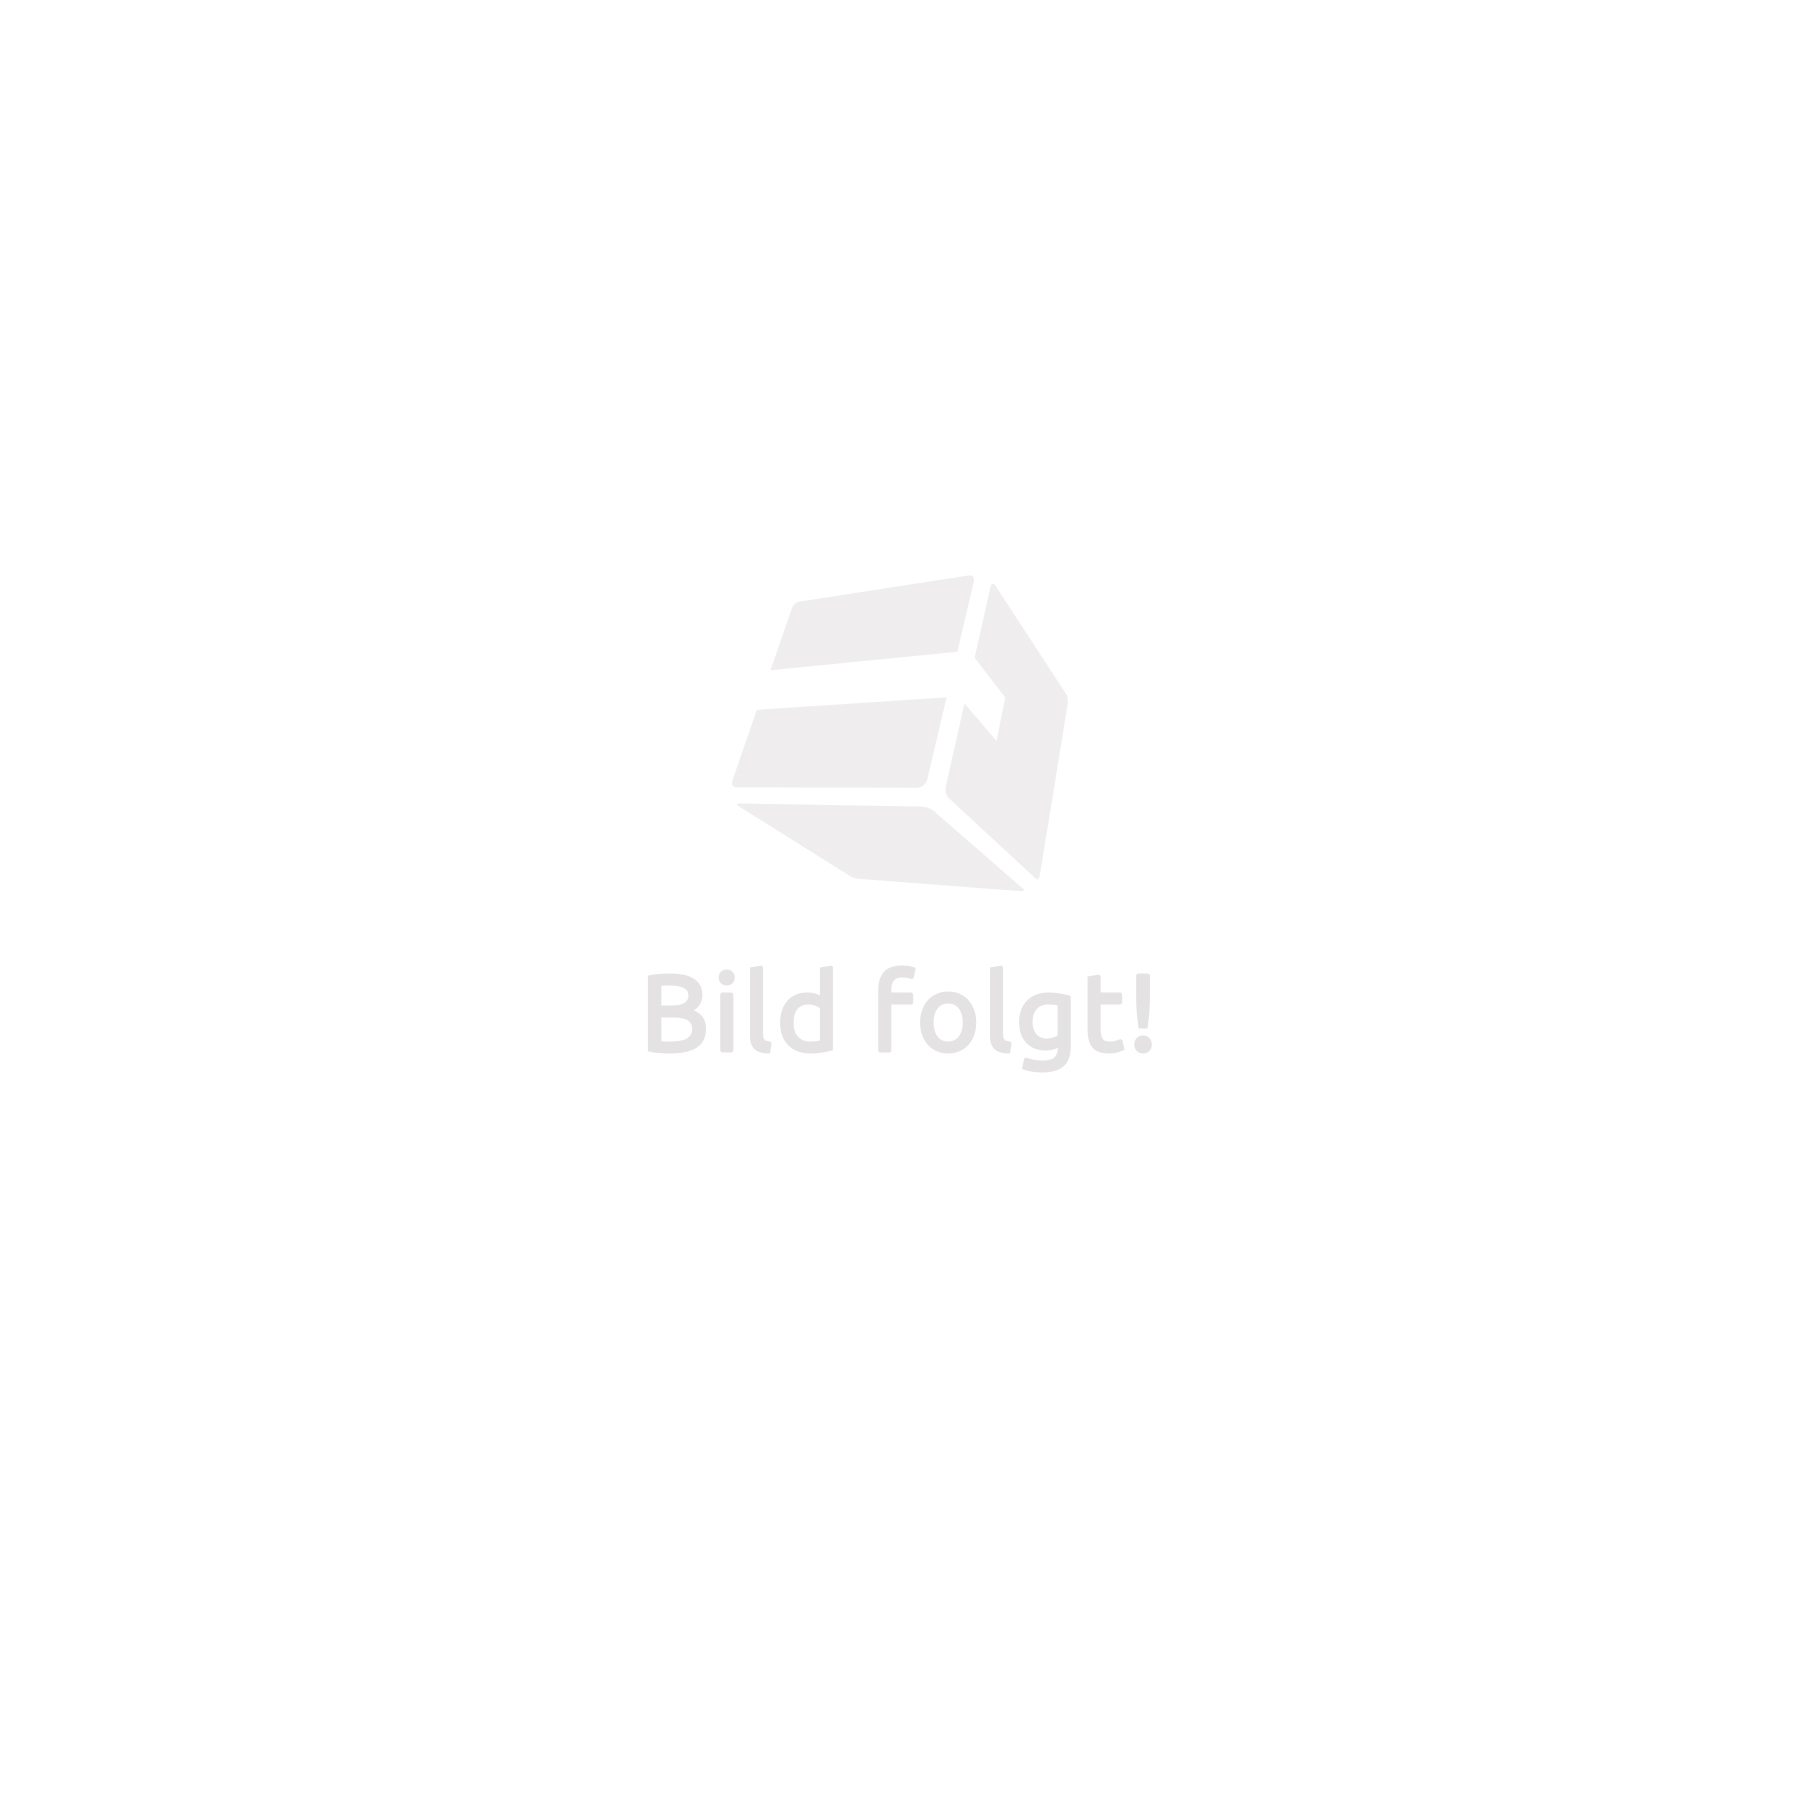 Table de massage Pliante 3 Zones Aluminium Portable + Housse